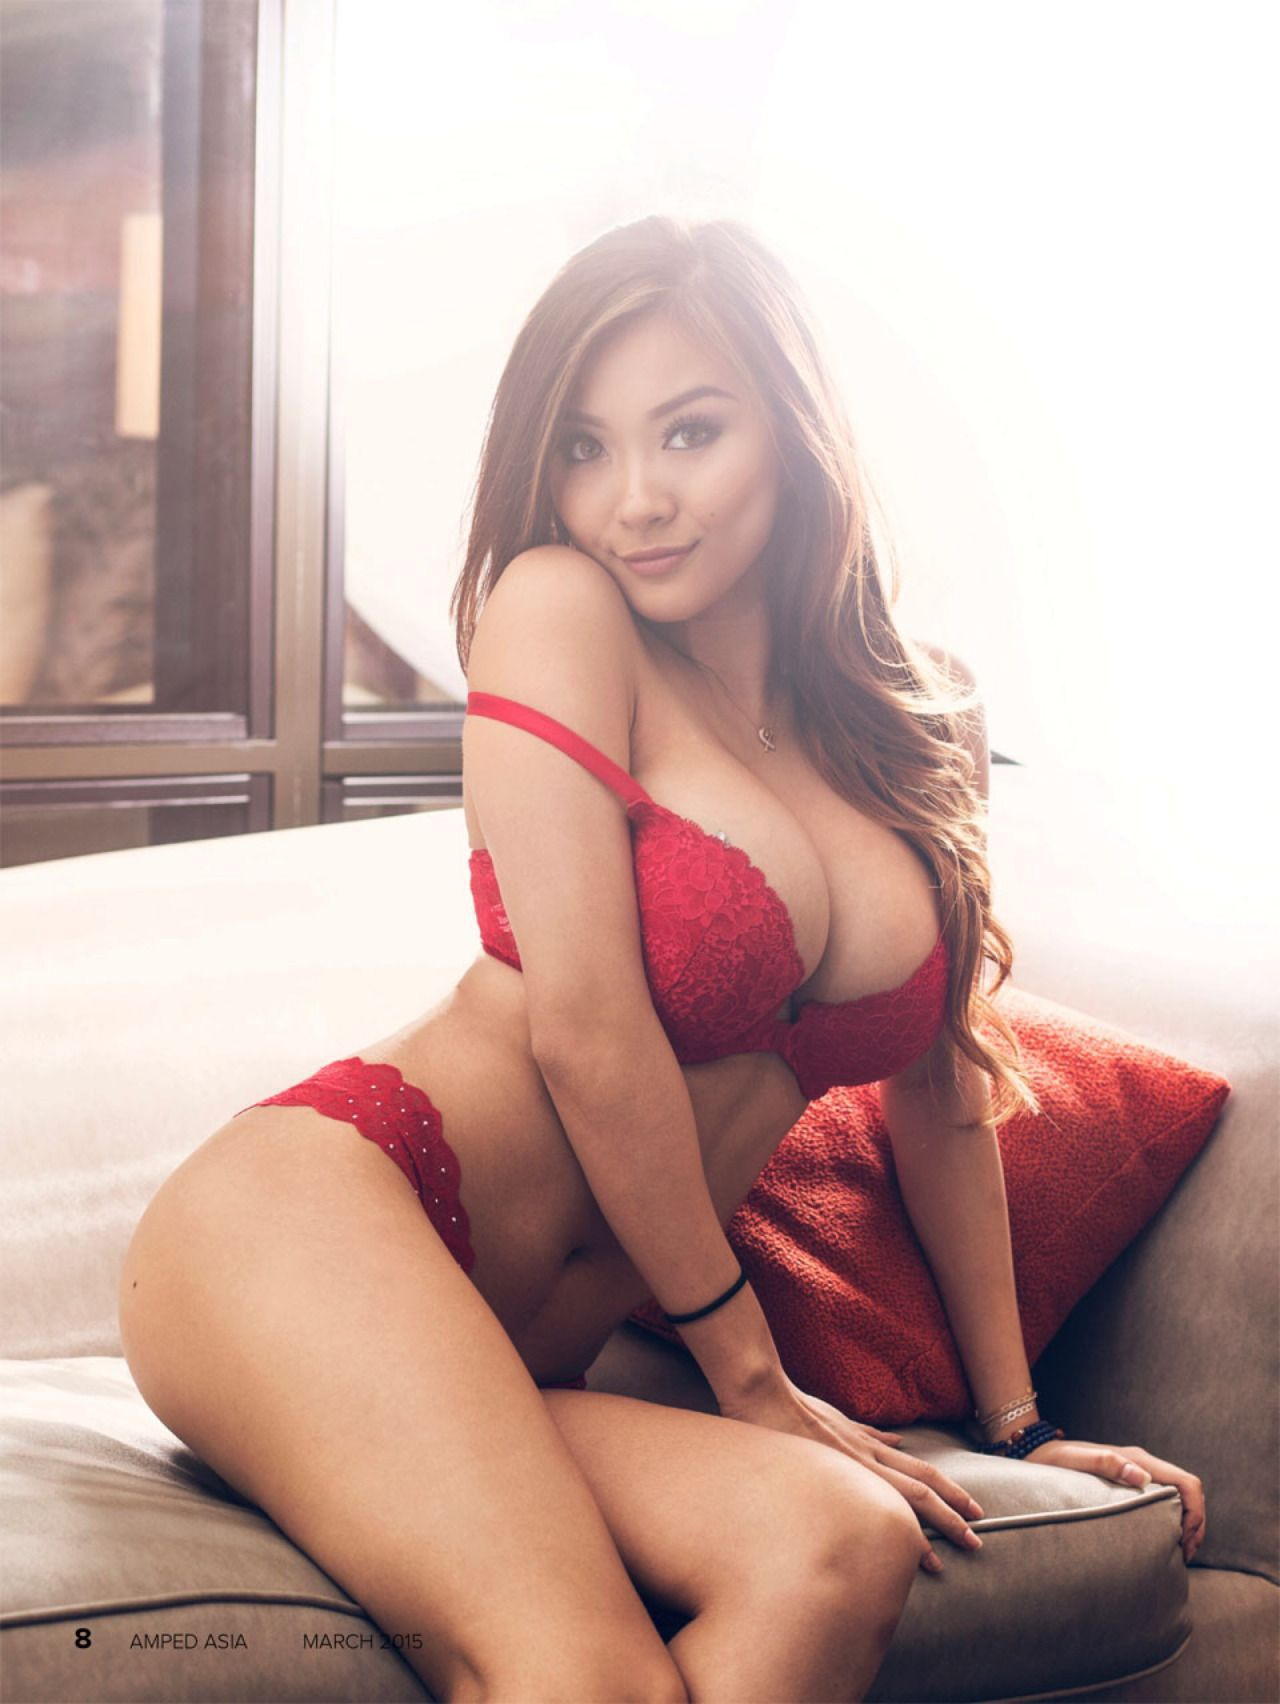 asian escort london nui